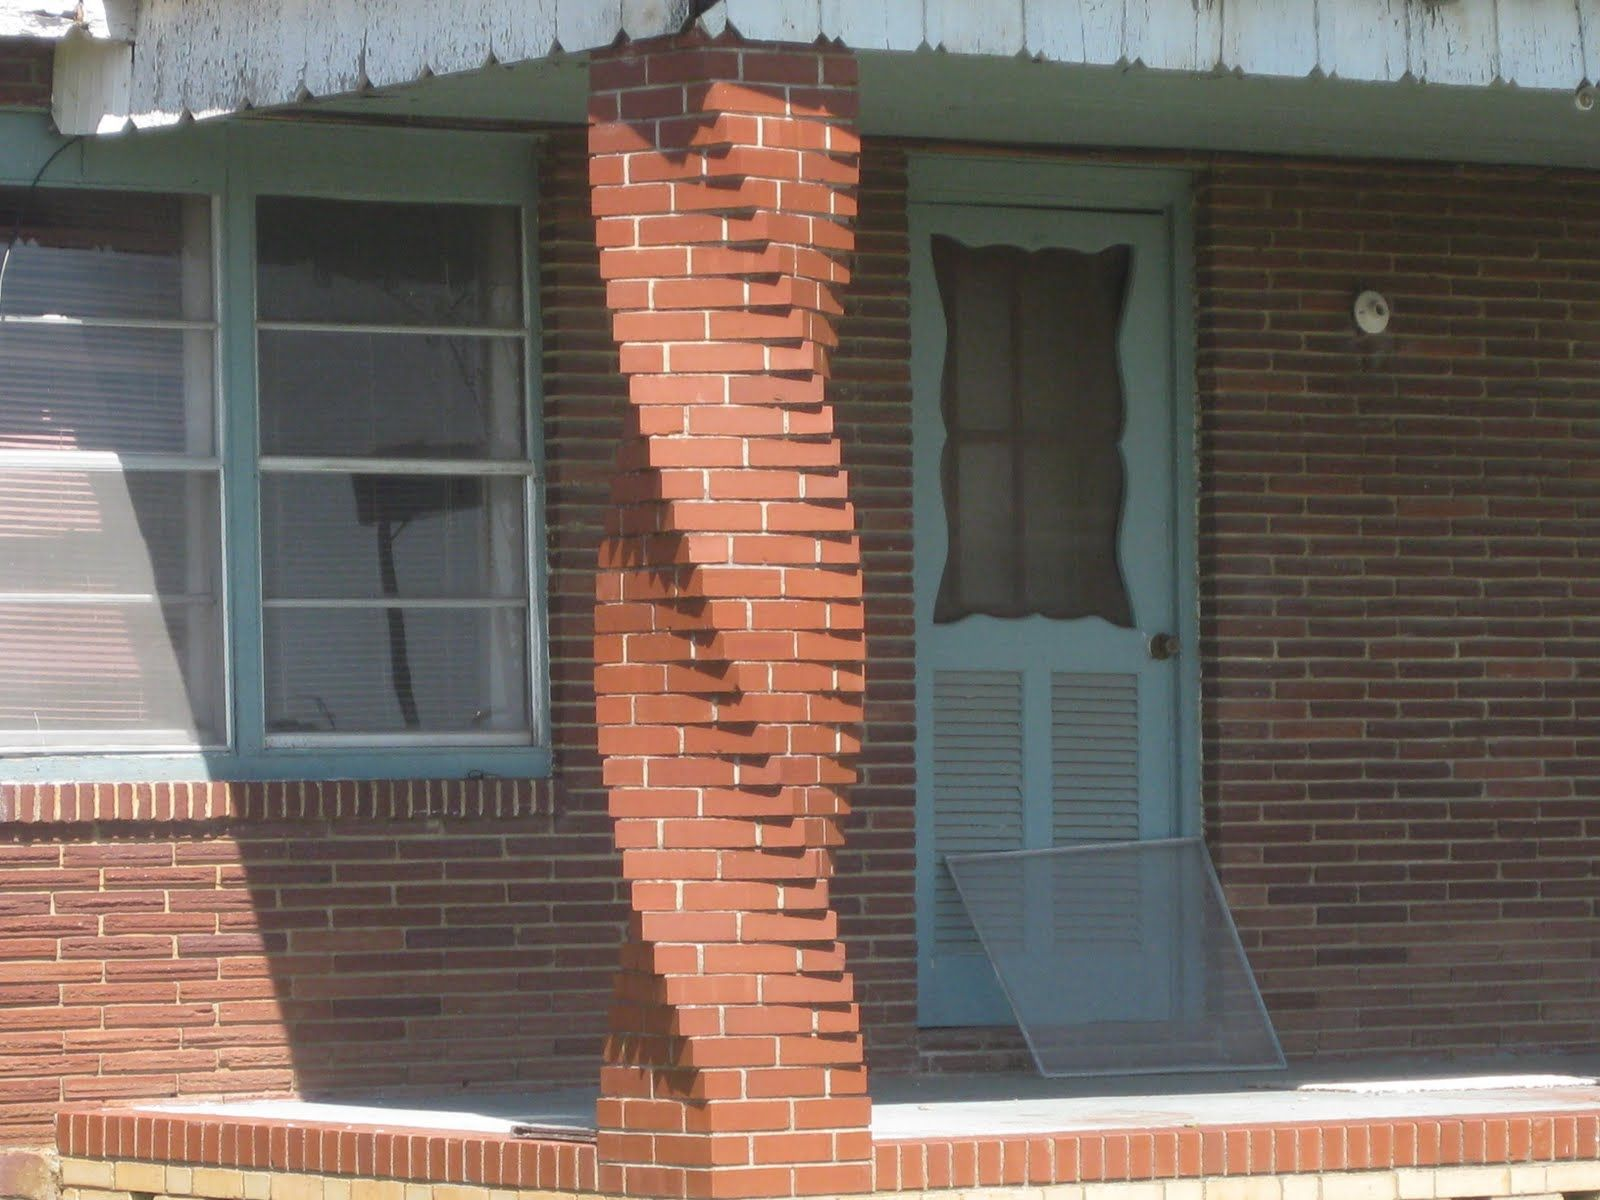 Twisted Brick Pillar Amazing But Too Over The Top For Our